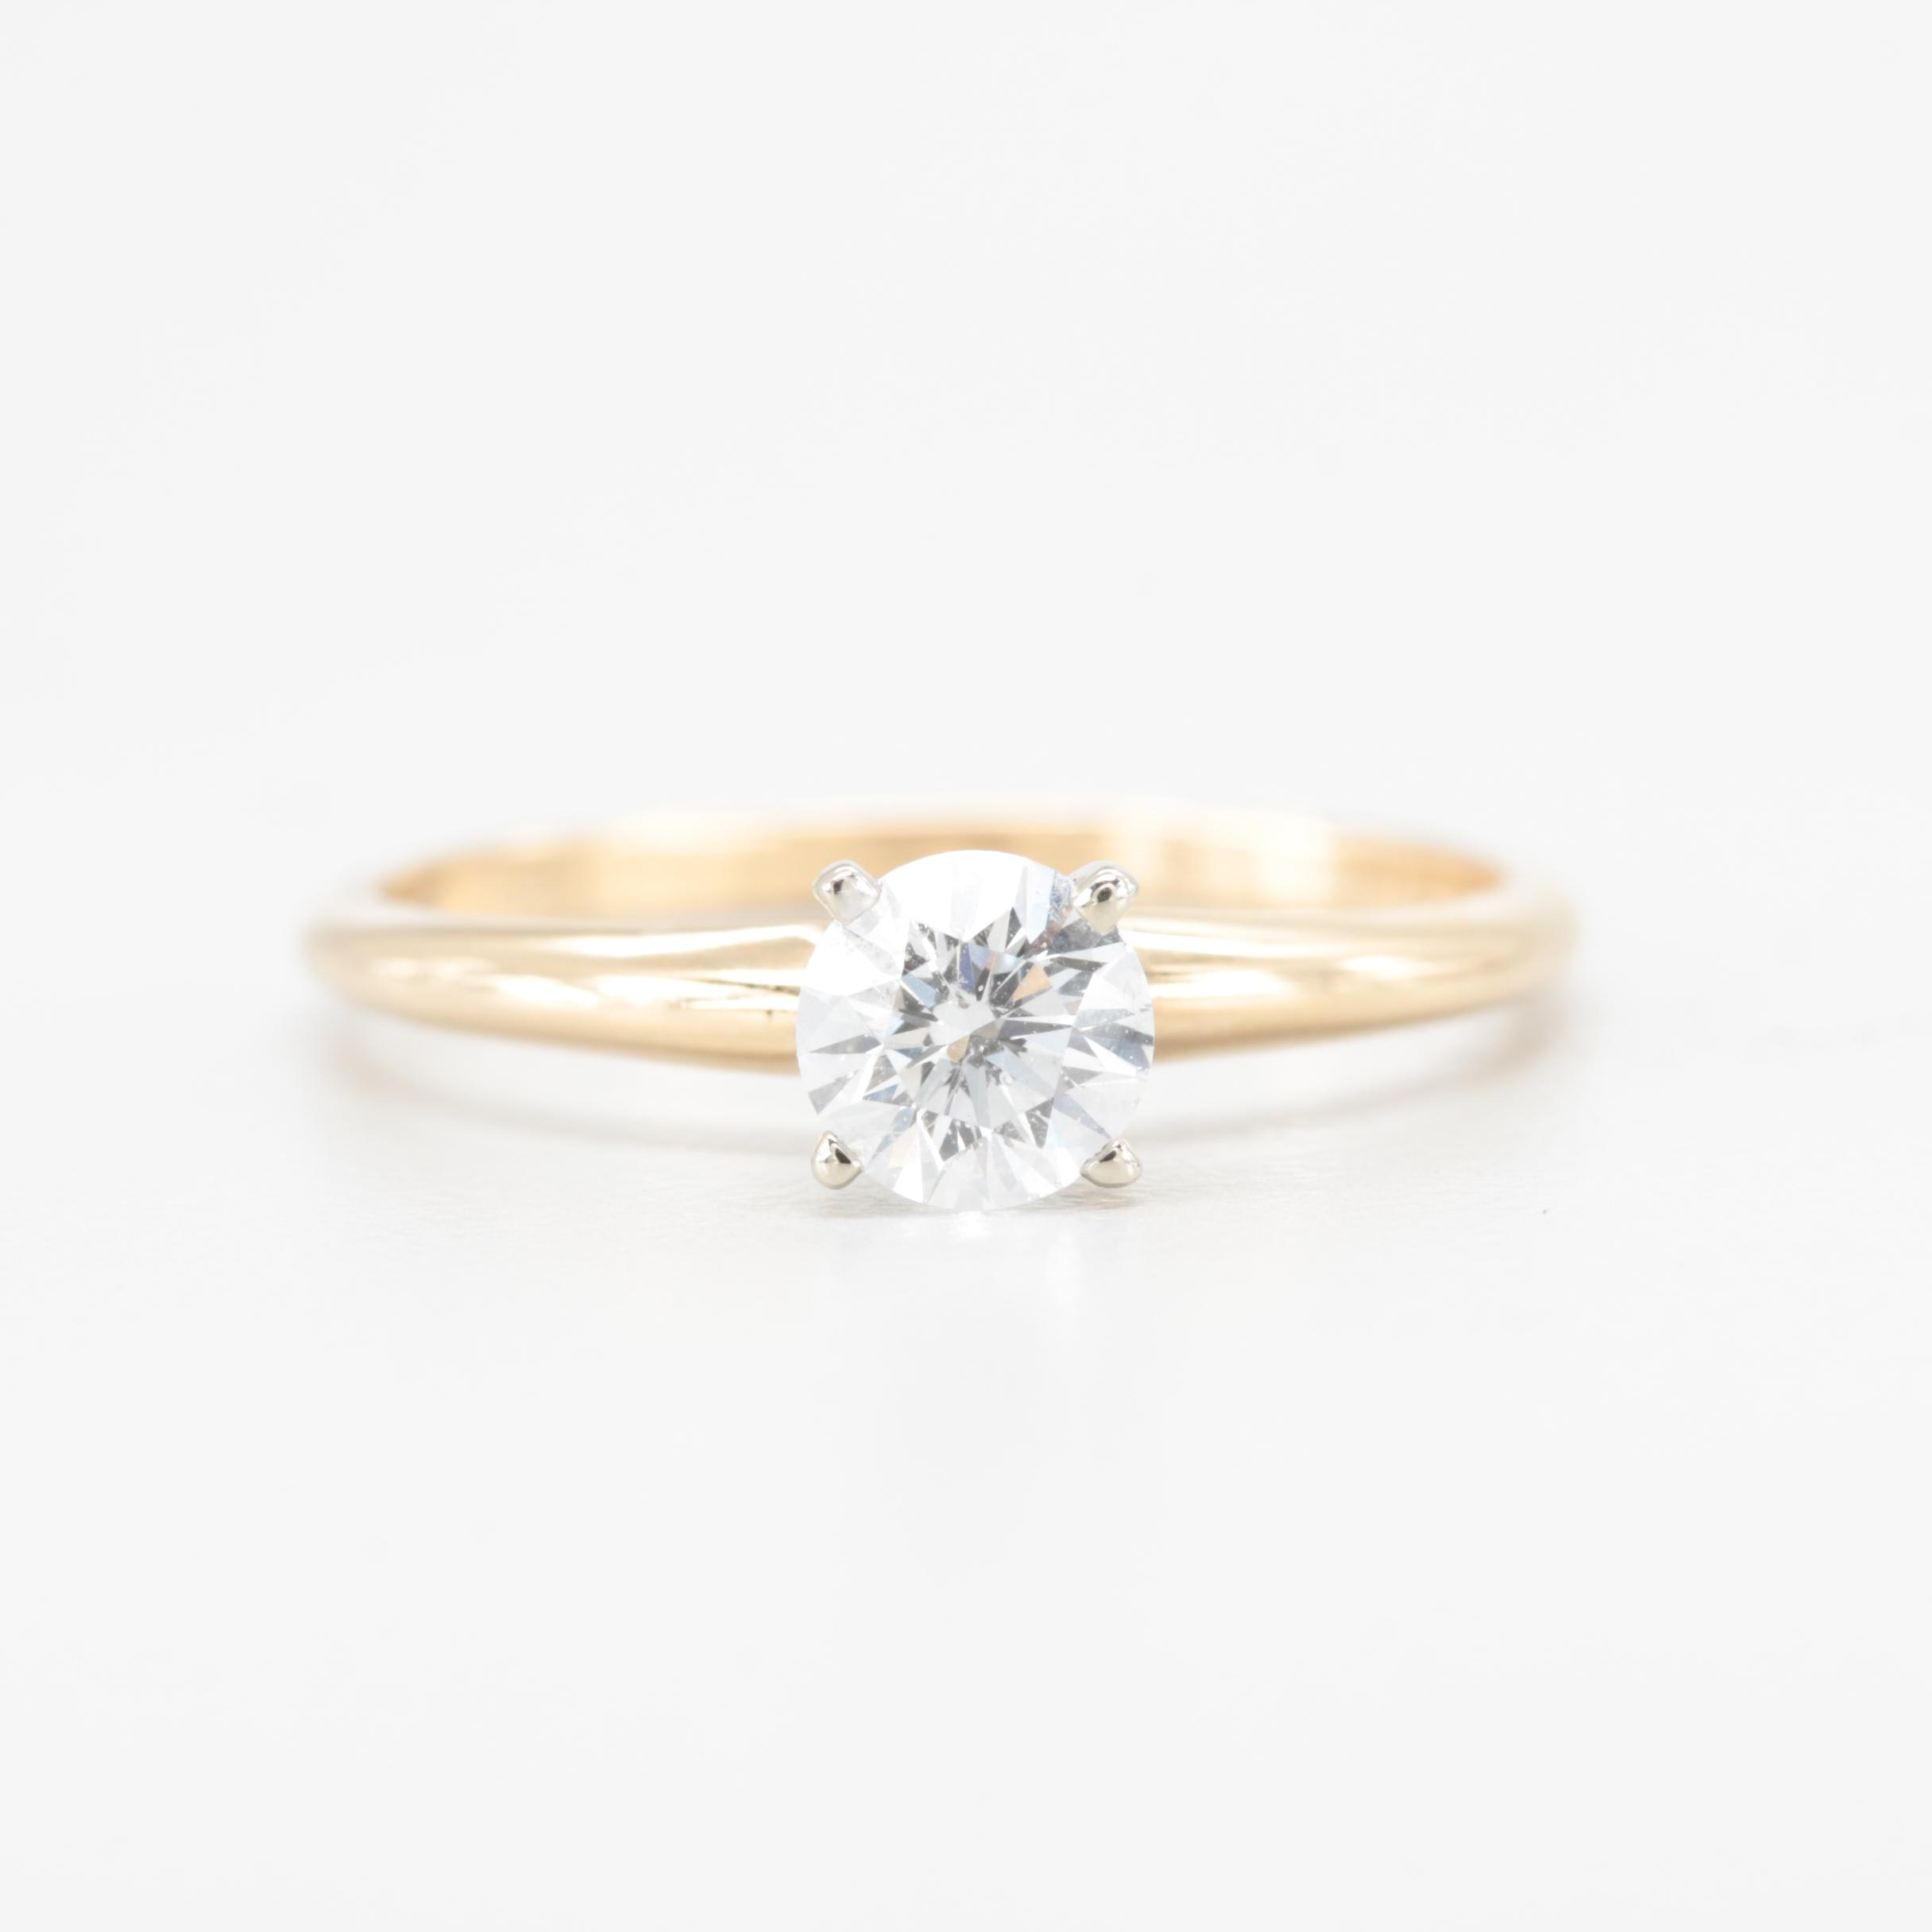 14K Yellow Gold Diamond Solitaire Ring with 18K White Gold